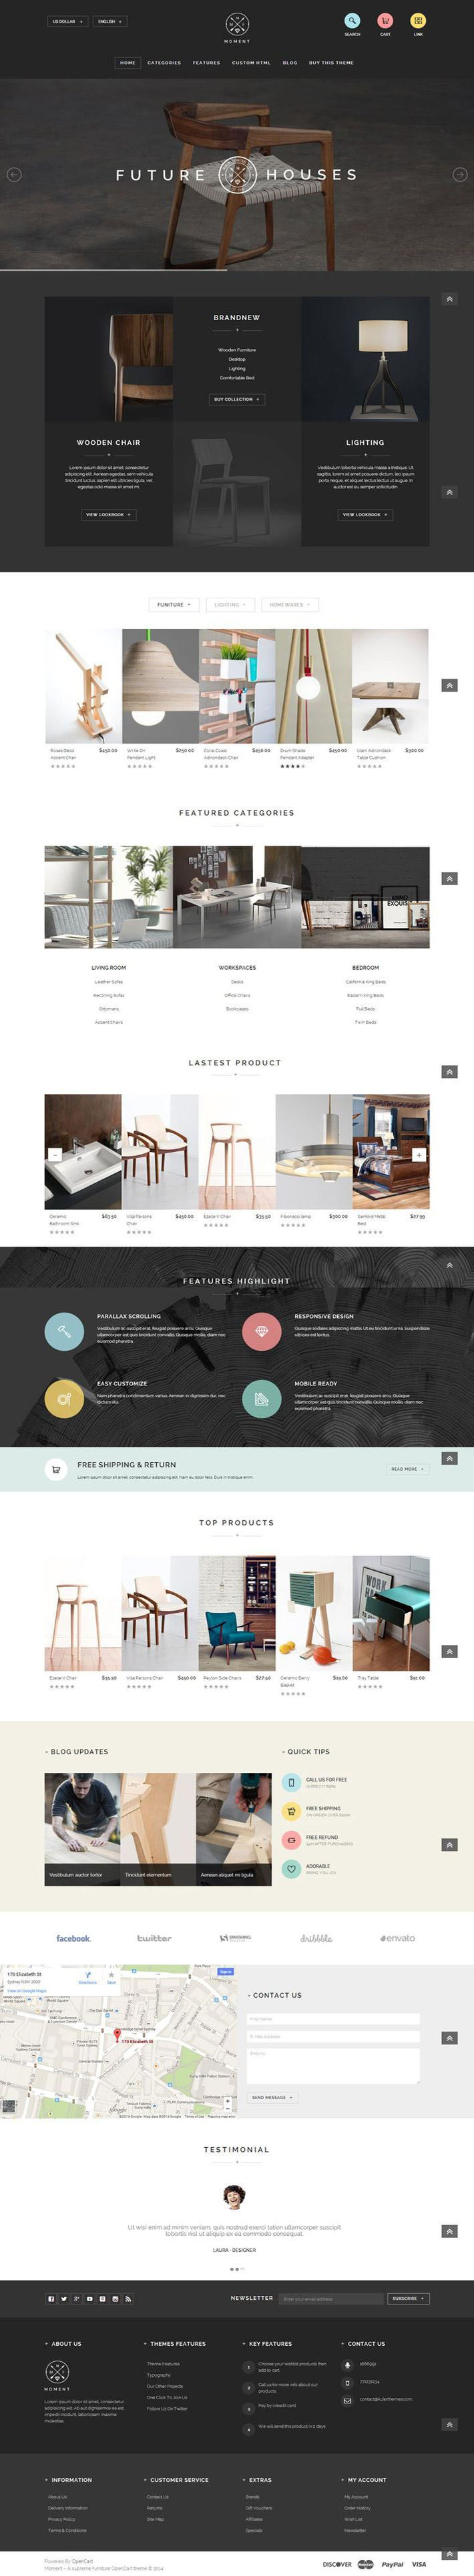 Clean-Web-Design-Inspiration-2015-02